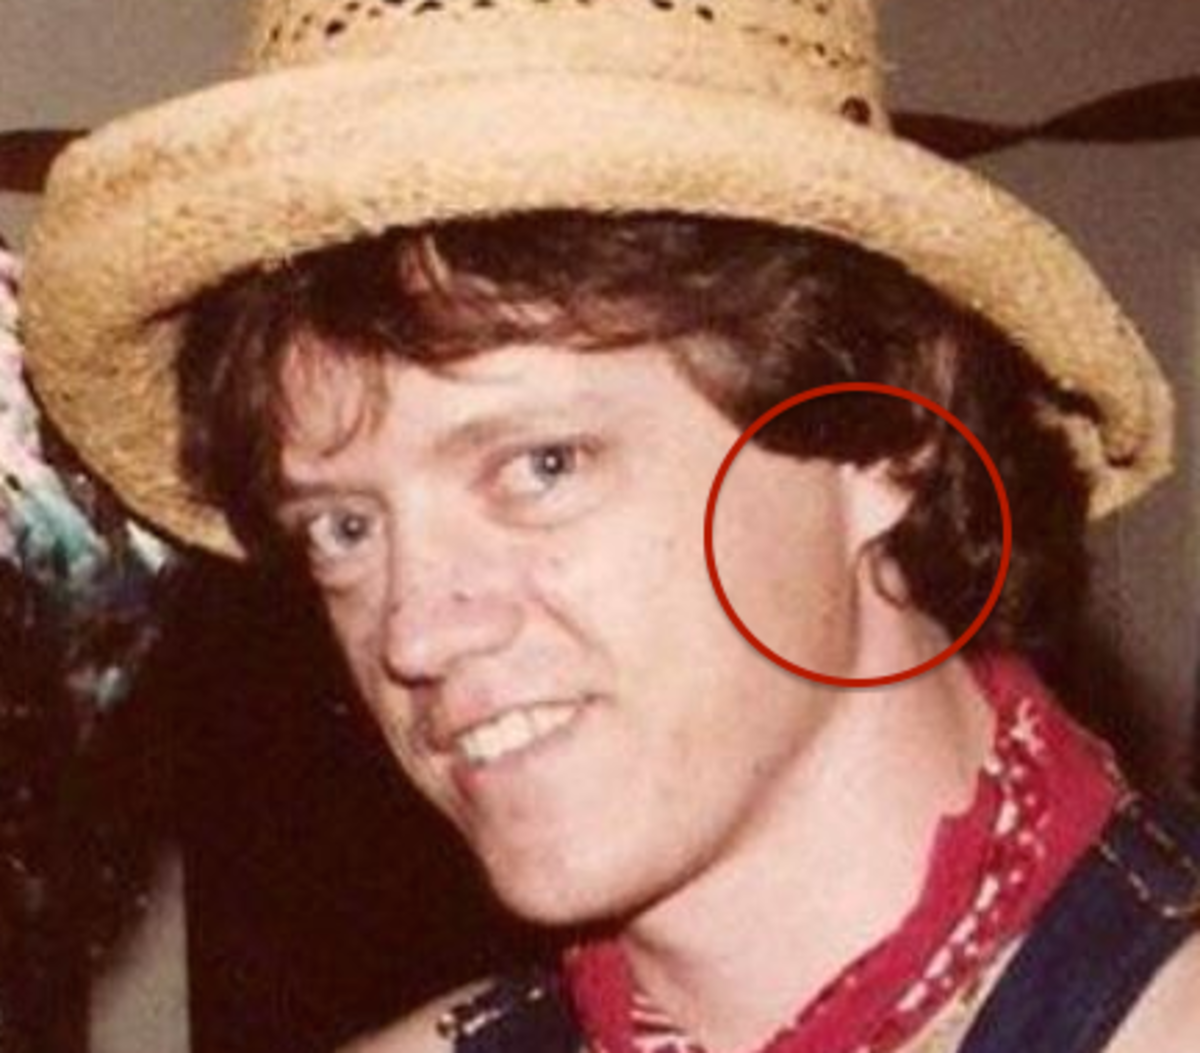 Clinton's earlobe is entirely attached.  It is important to note that this is not a dominant trait; most earlobes are unattached.